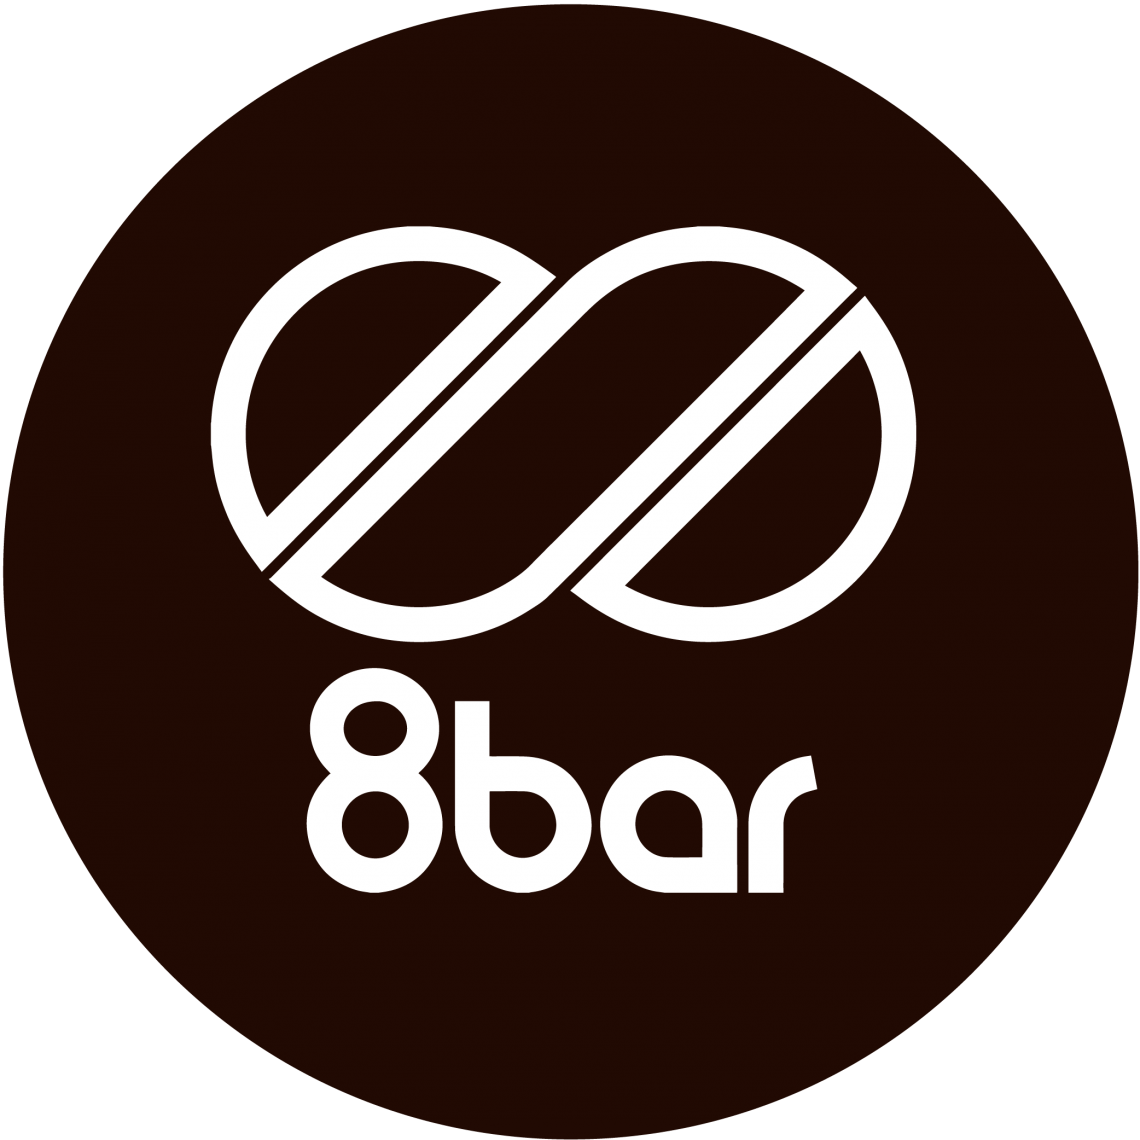 8bar crit 2019 sponsors 8bar 1140x1140 - 8bar Pathfinder - Gravel - 1 day